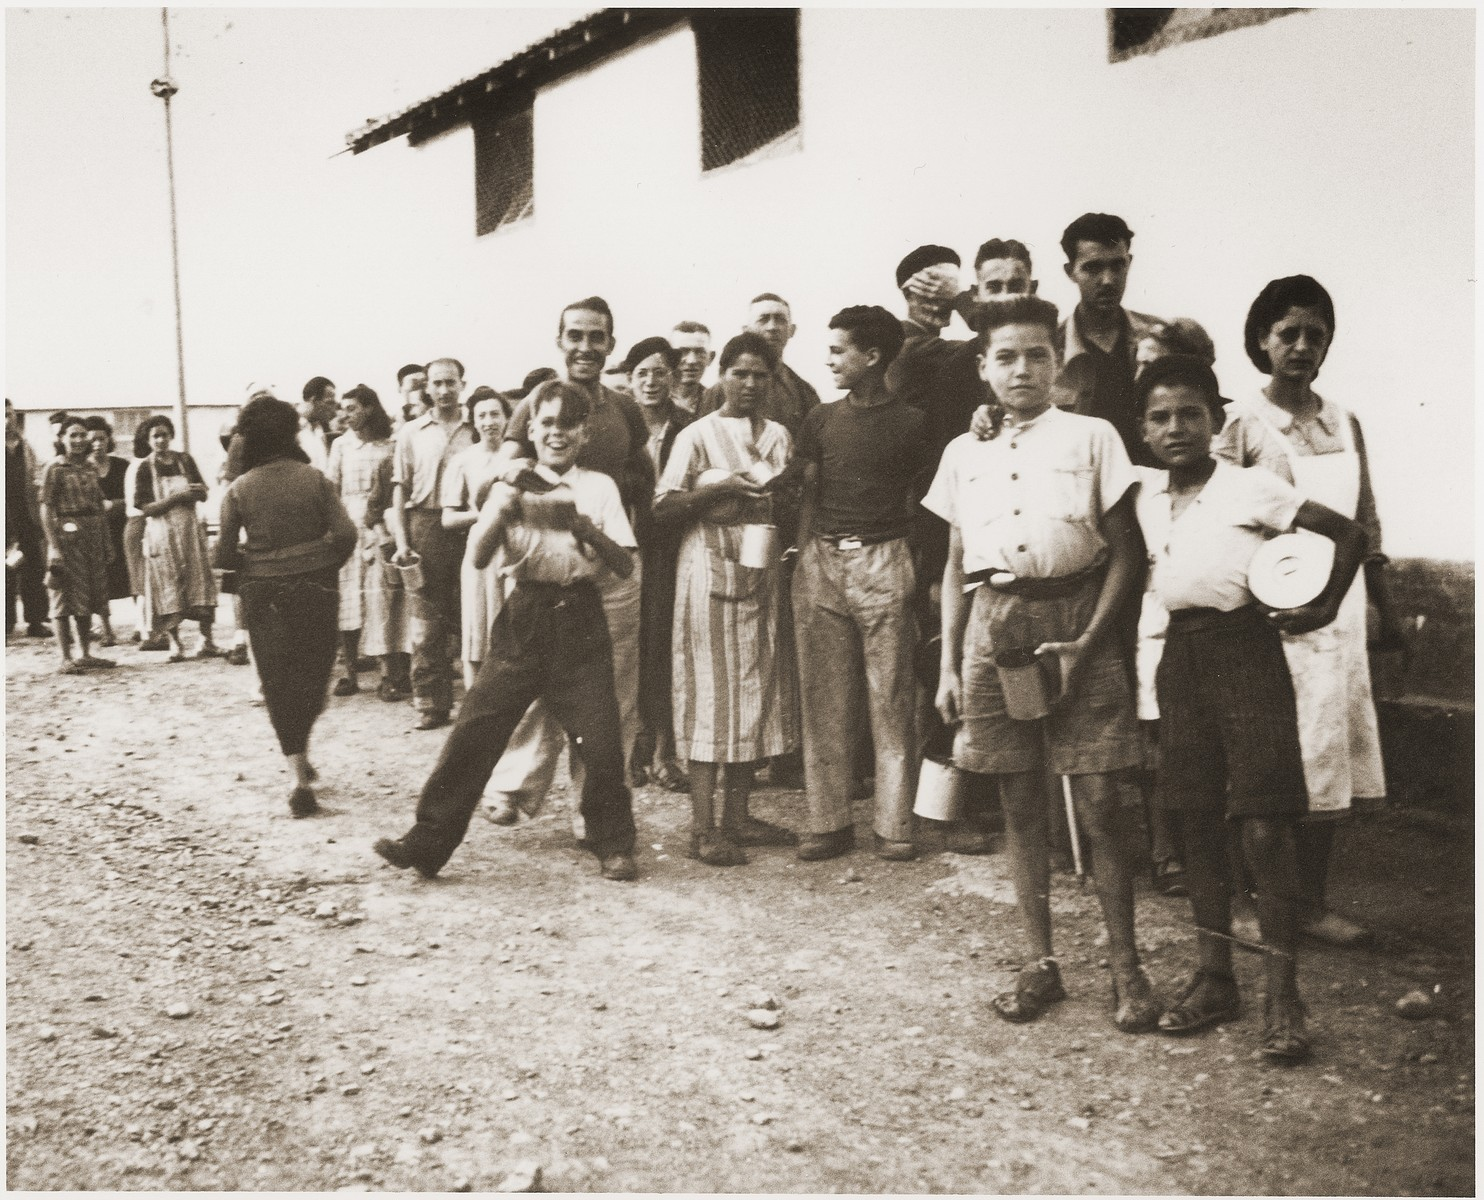 Children wait outside the Secours Suisse barracks for a meal to be served.